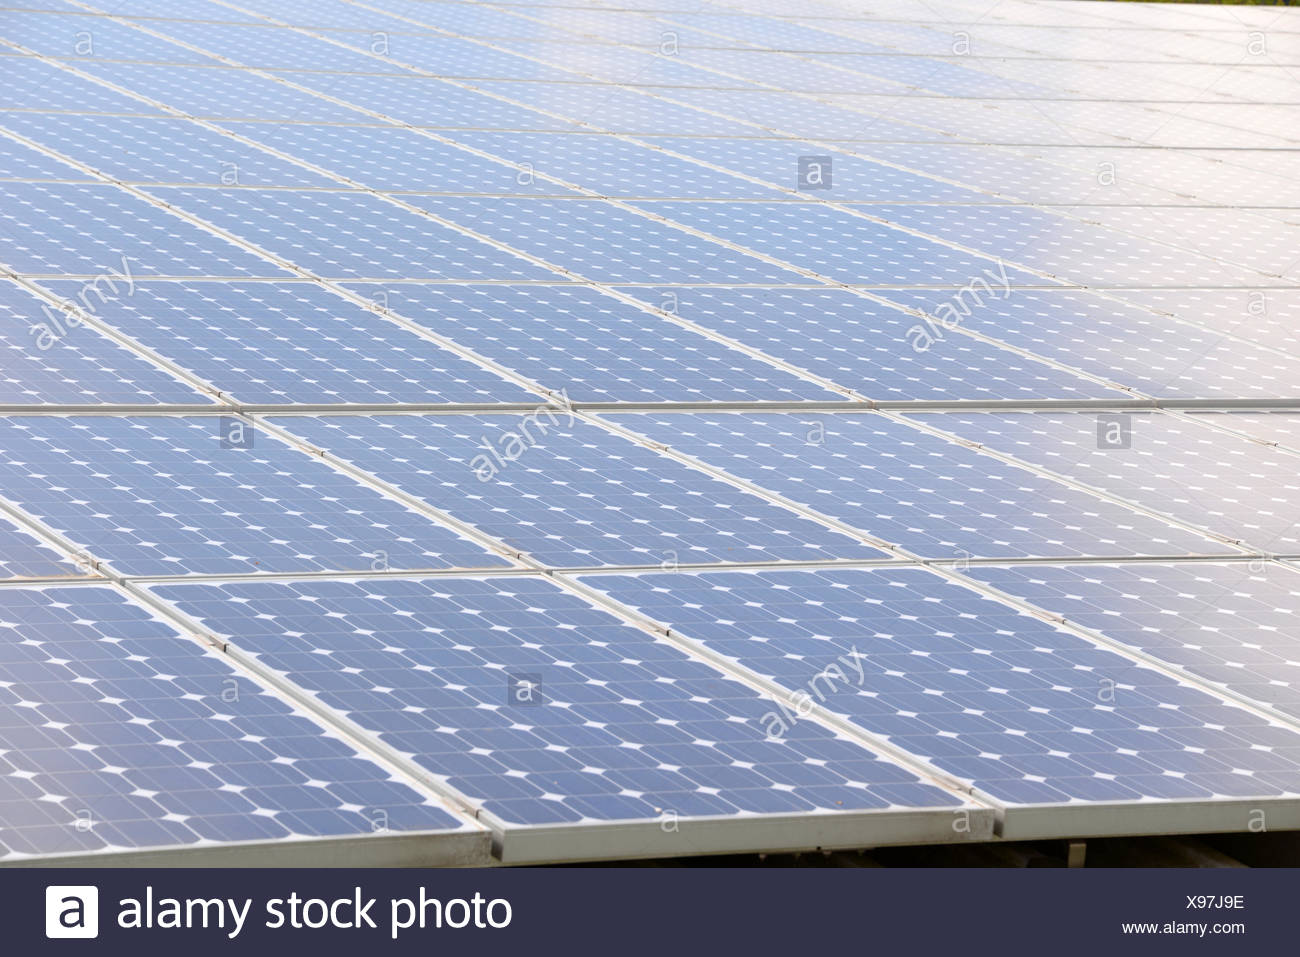 Solaranlage Stock Photo 281065834 Alamy